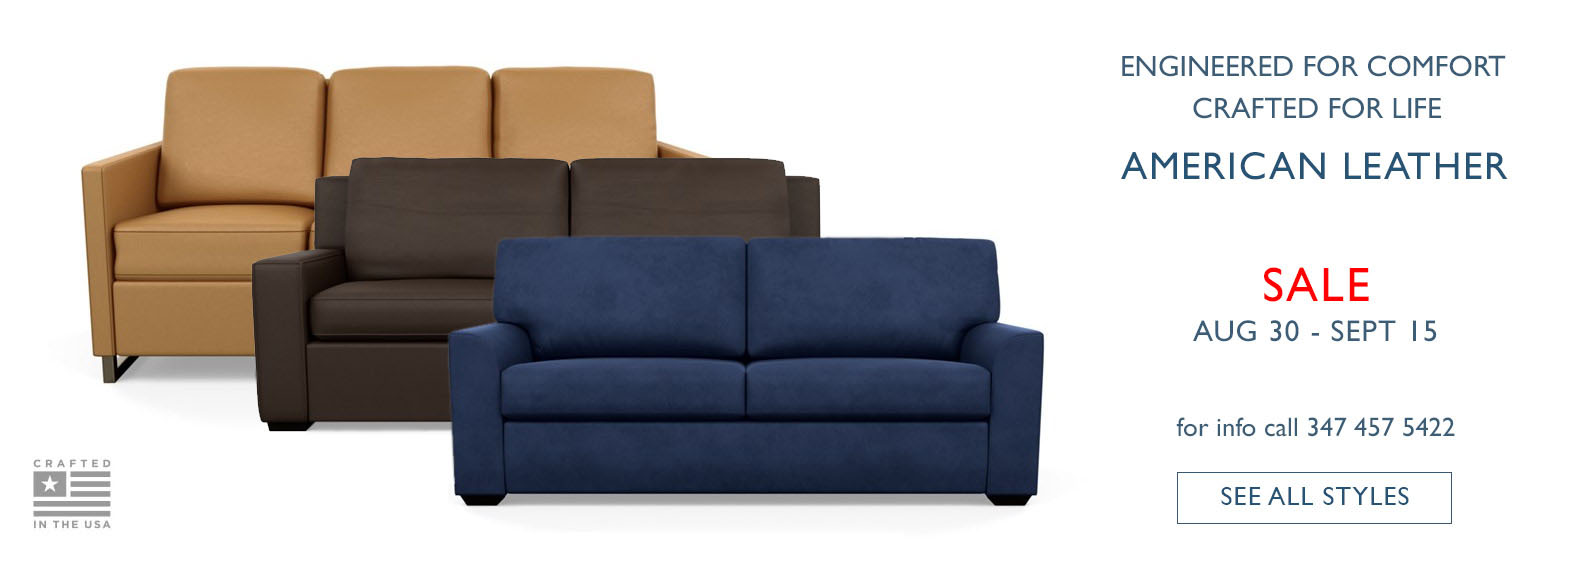 Save on Quality Sofa beds from American Leather till Sep 15 2019